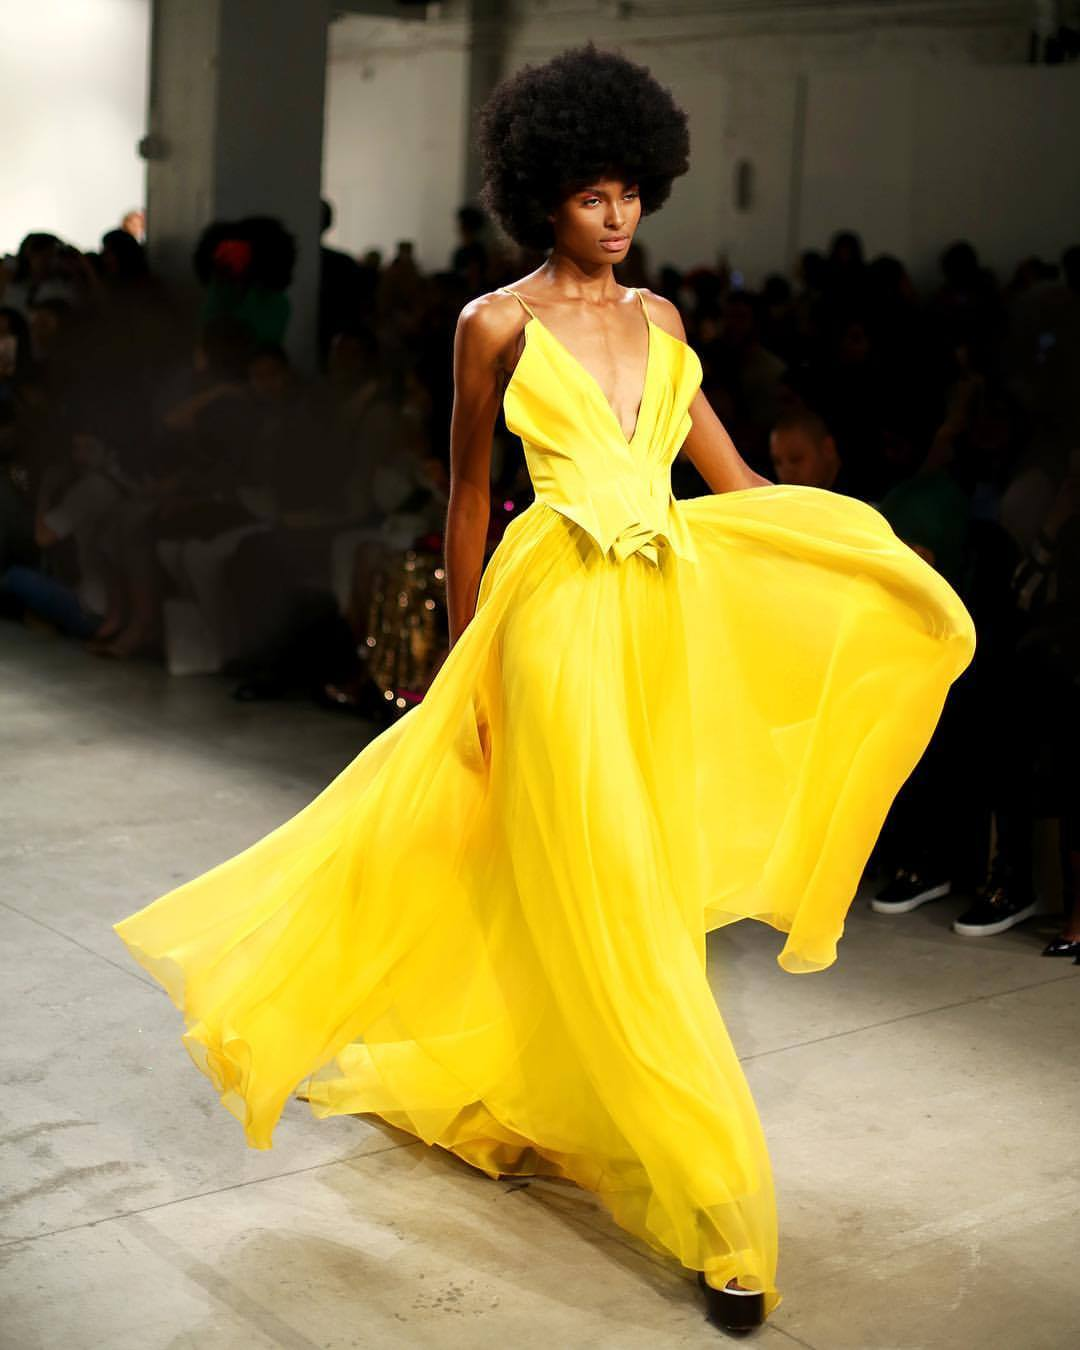 Leanne Marshall, NYFW 2017, NYFW, New York FASHION WEEK, NYC travel guide, YELLOW DRESS